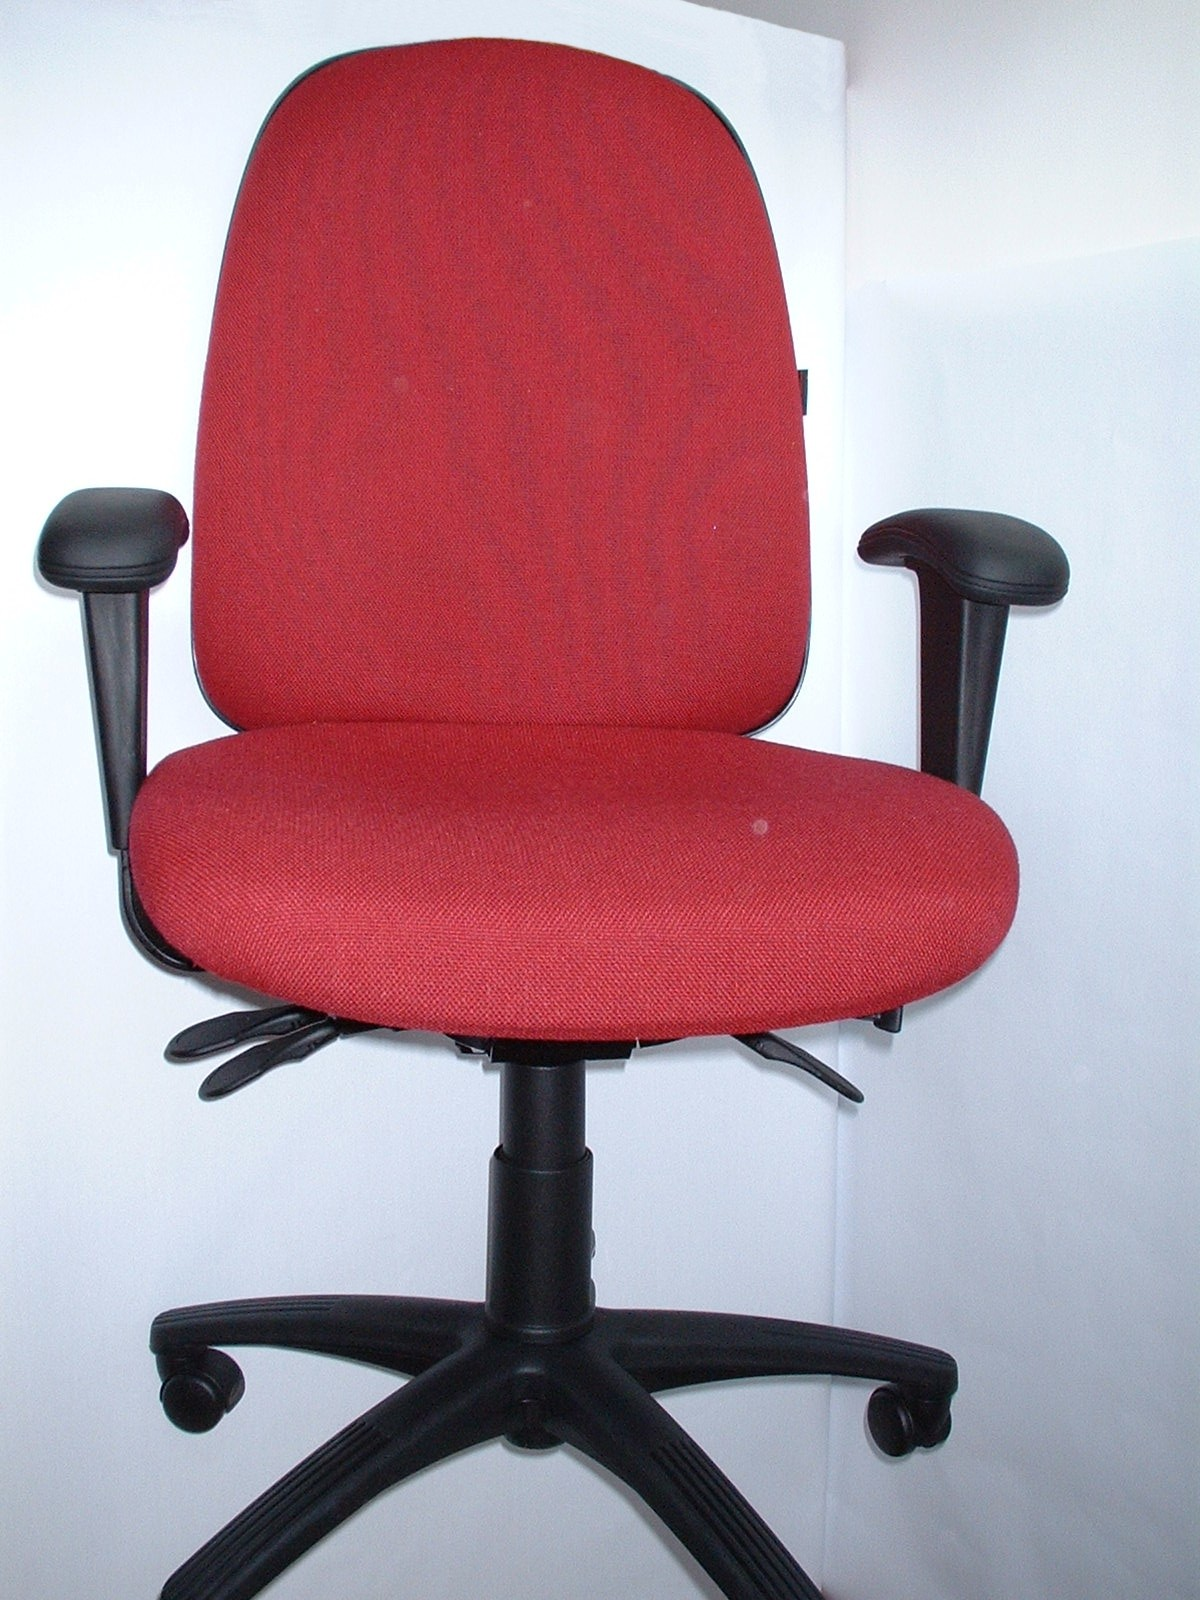 disability furniture chairs black office chair no wheels the gallery for gt handicapped people